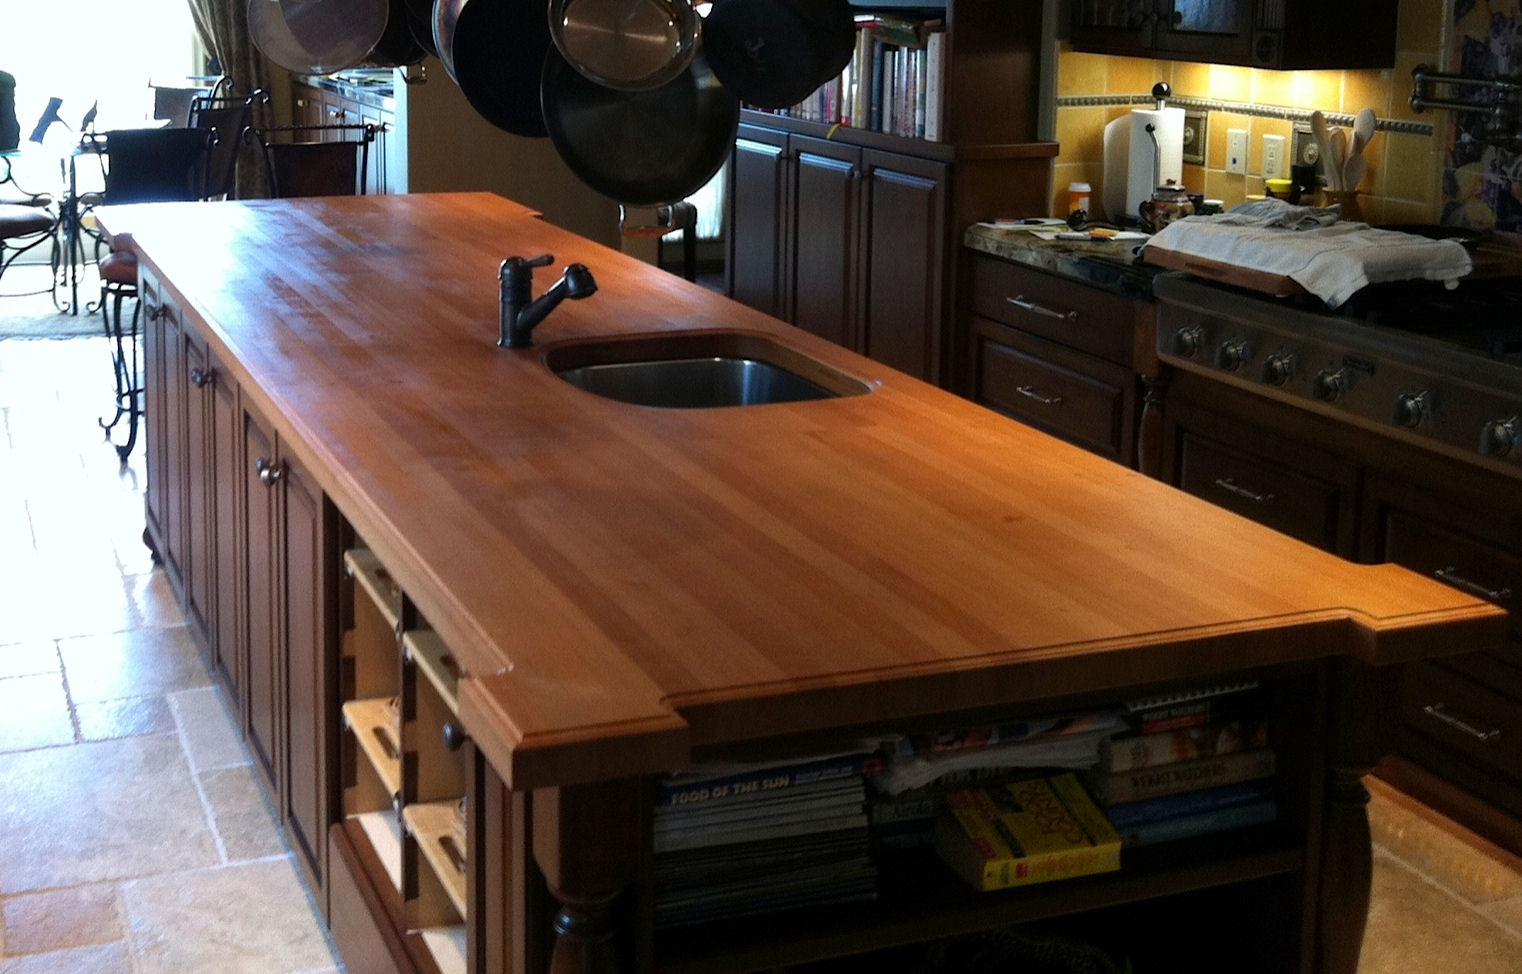 Craftsman style built in cabinets - Heart Of Oak Workshop Authentic Craftsman Mission Style Built In Cabinets